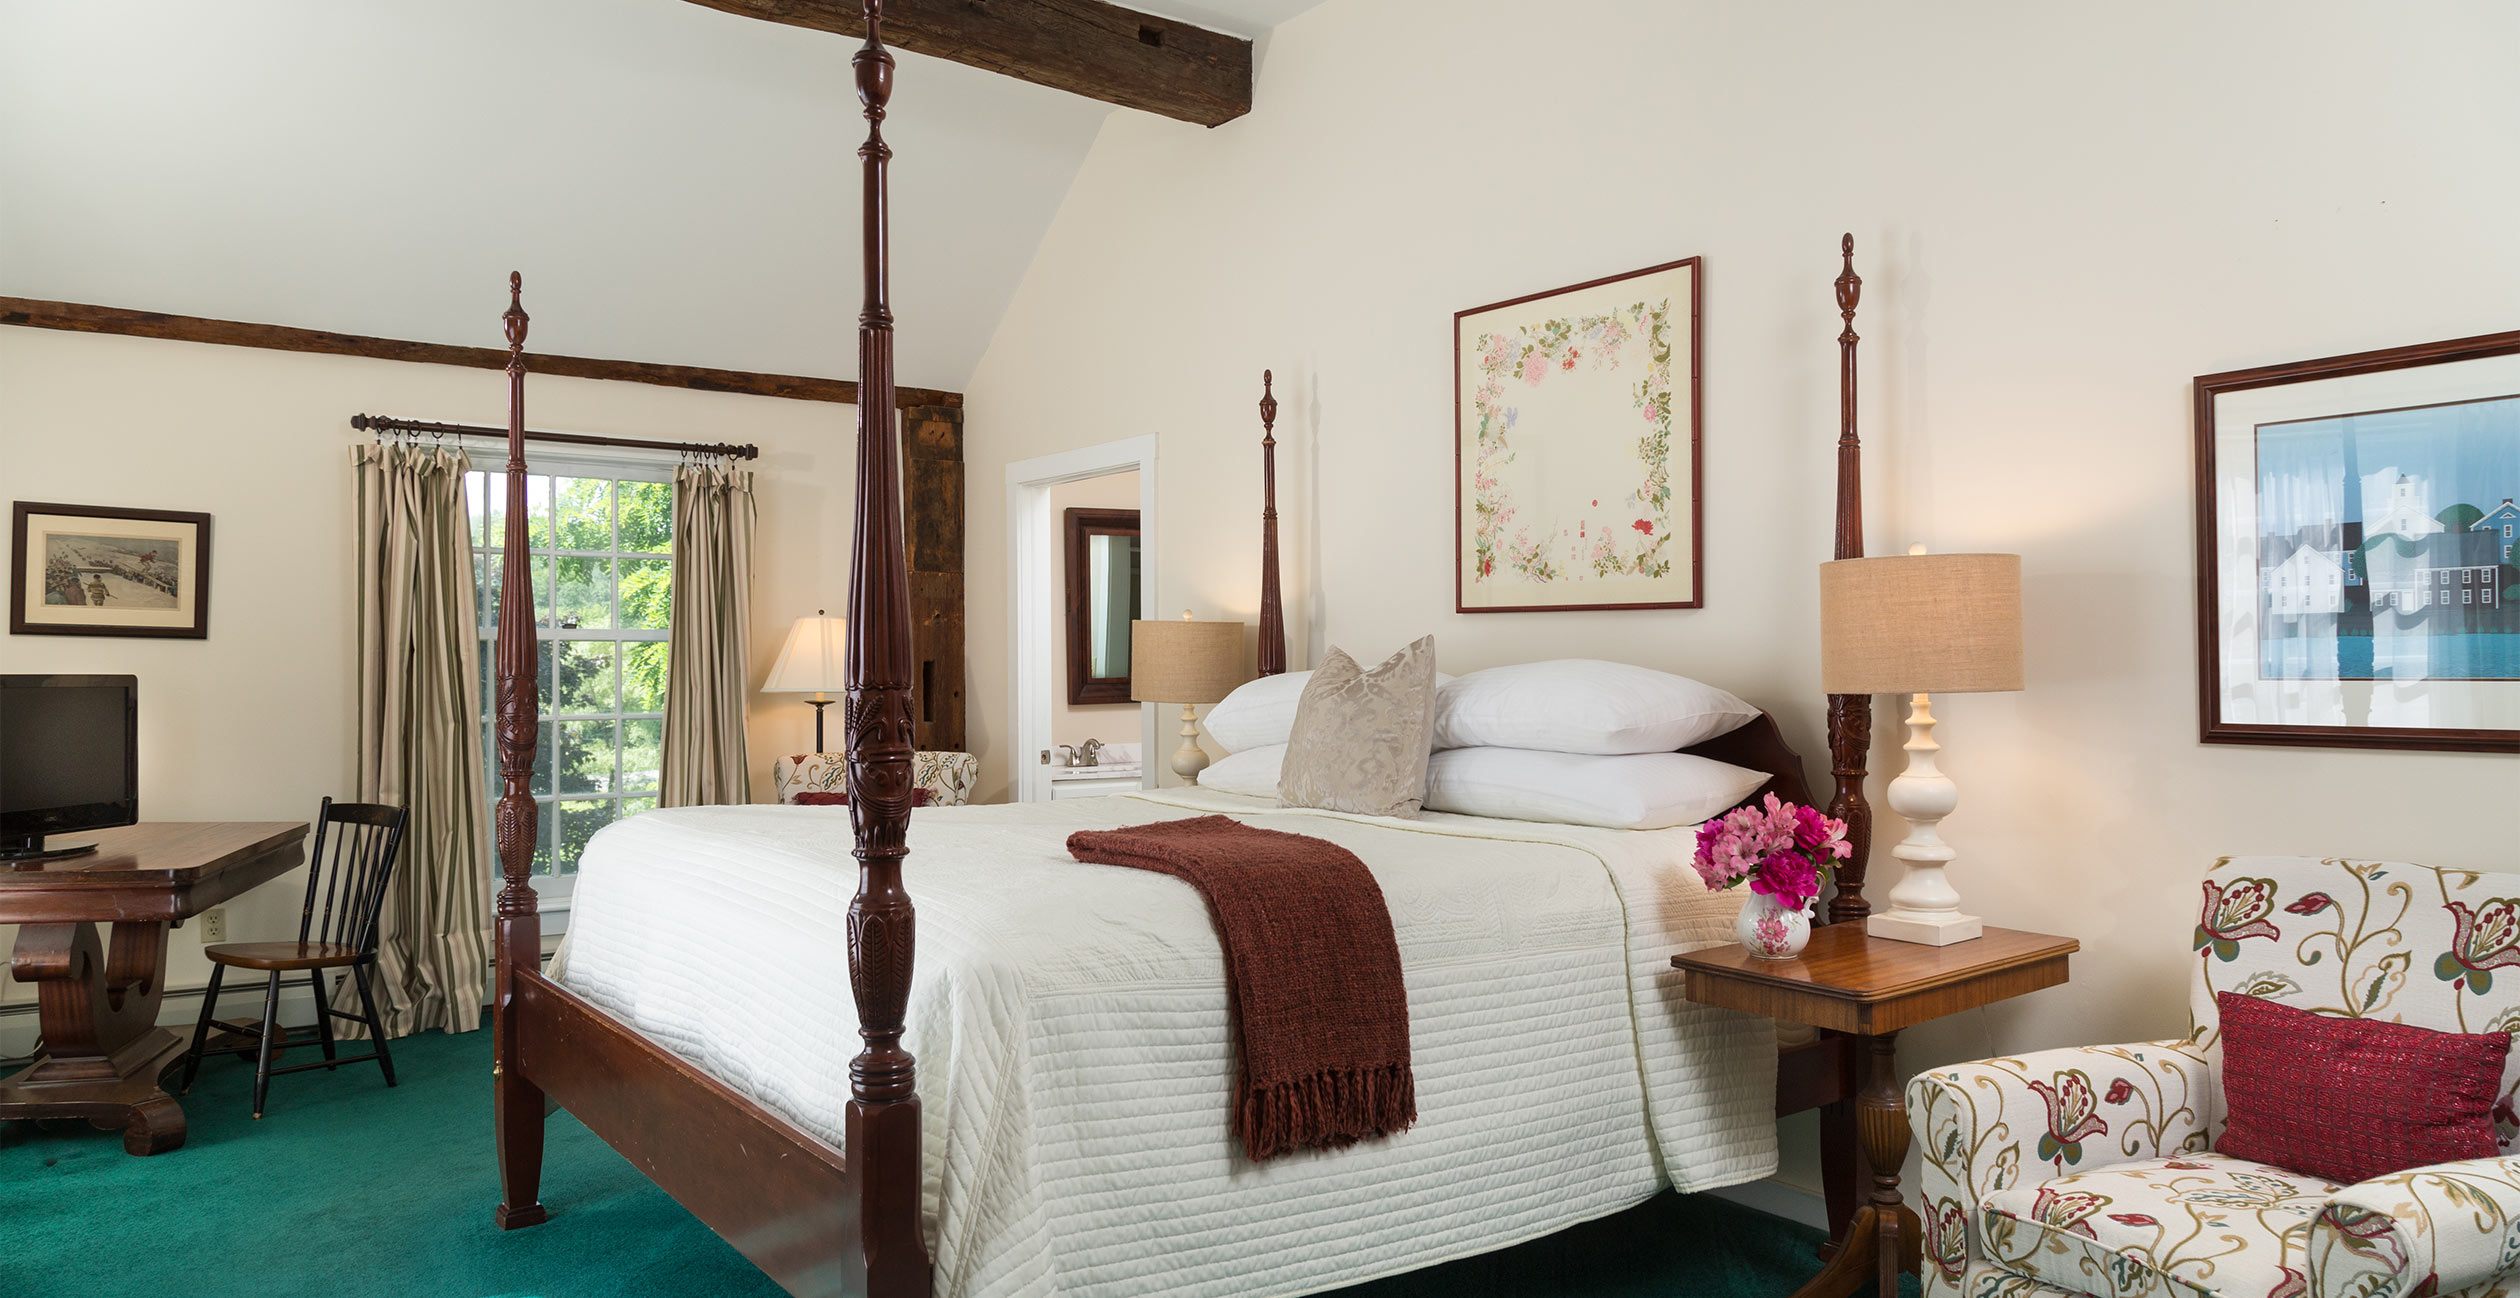 Room 16 at Chesterfield Inn - Where to Stay in NH